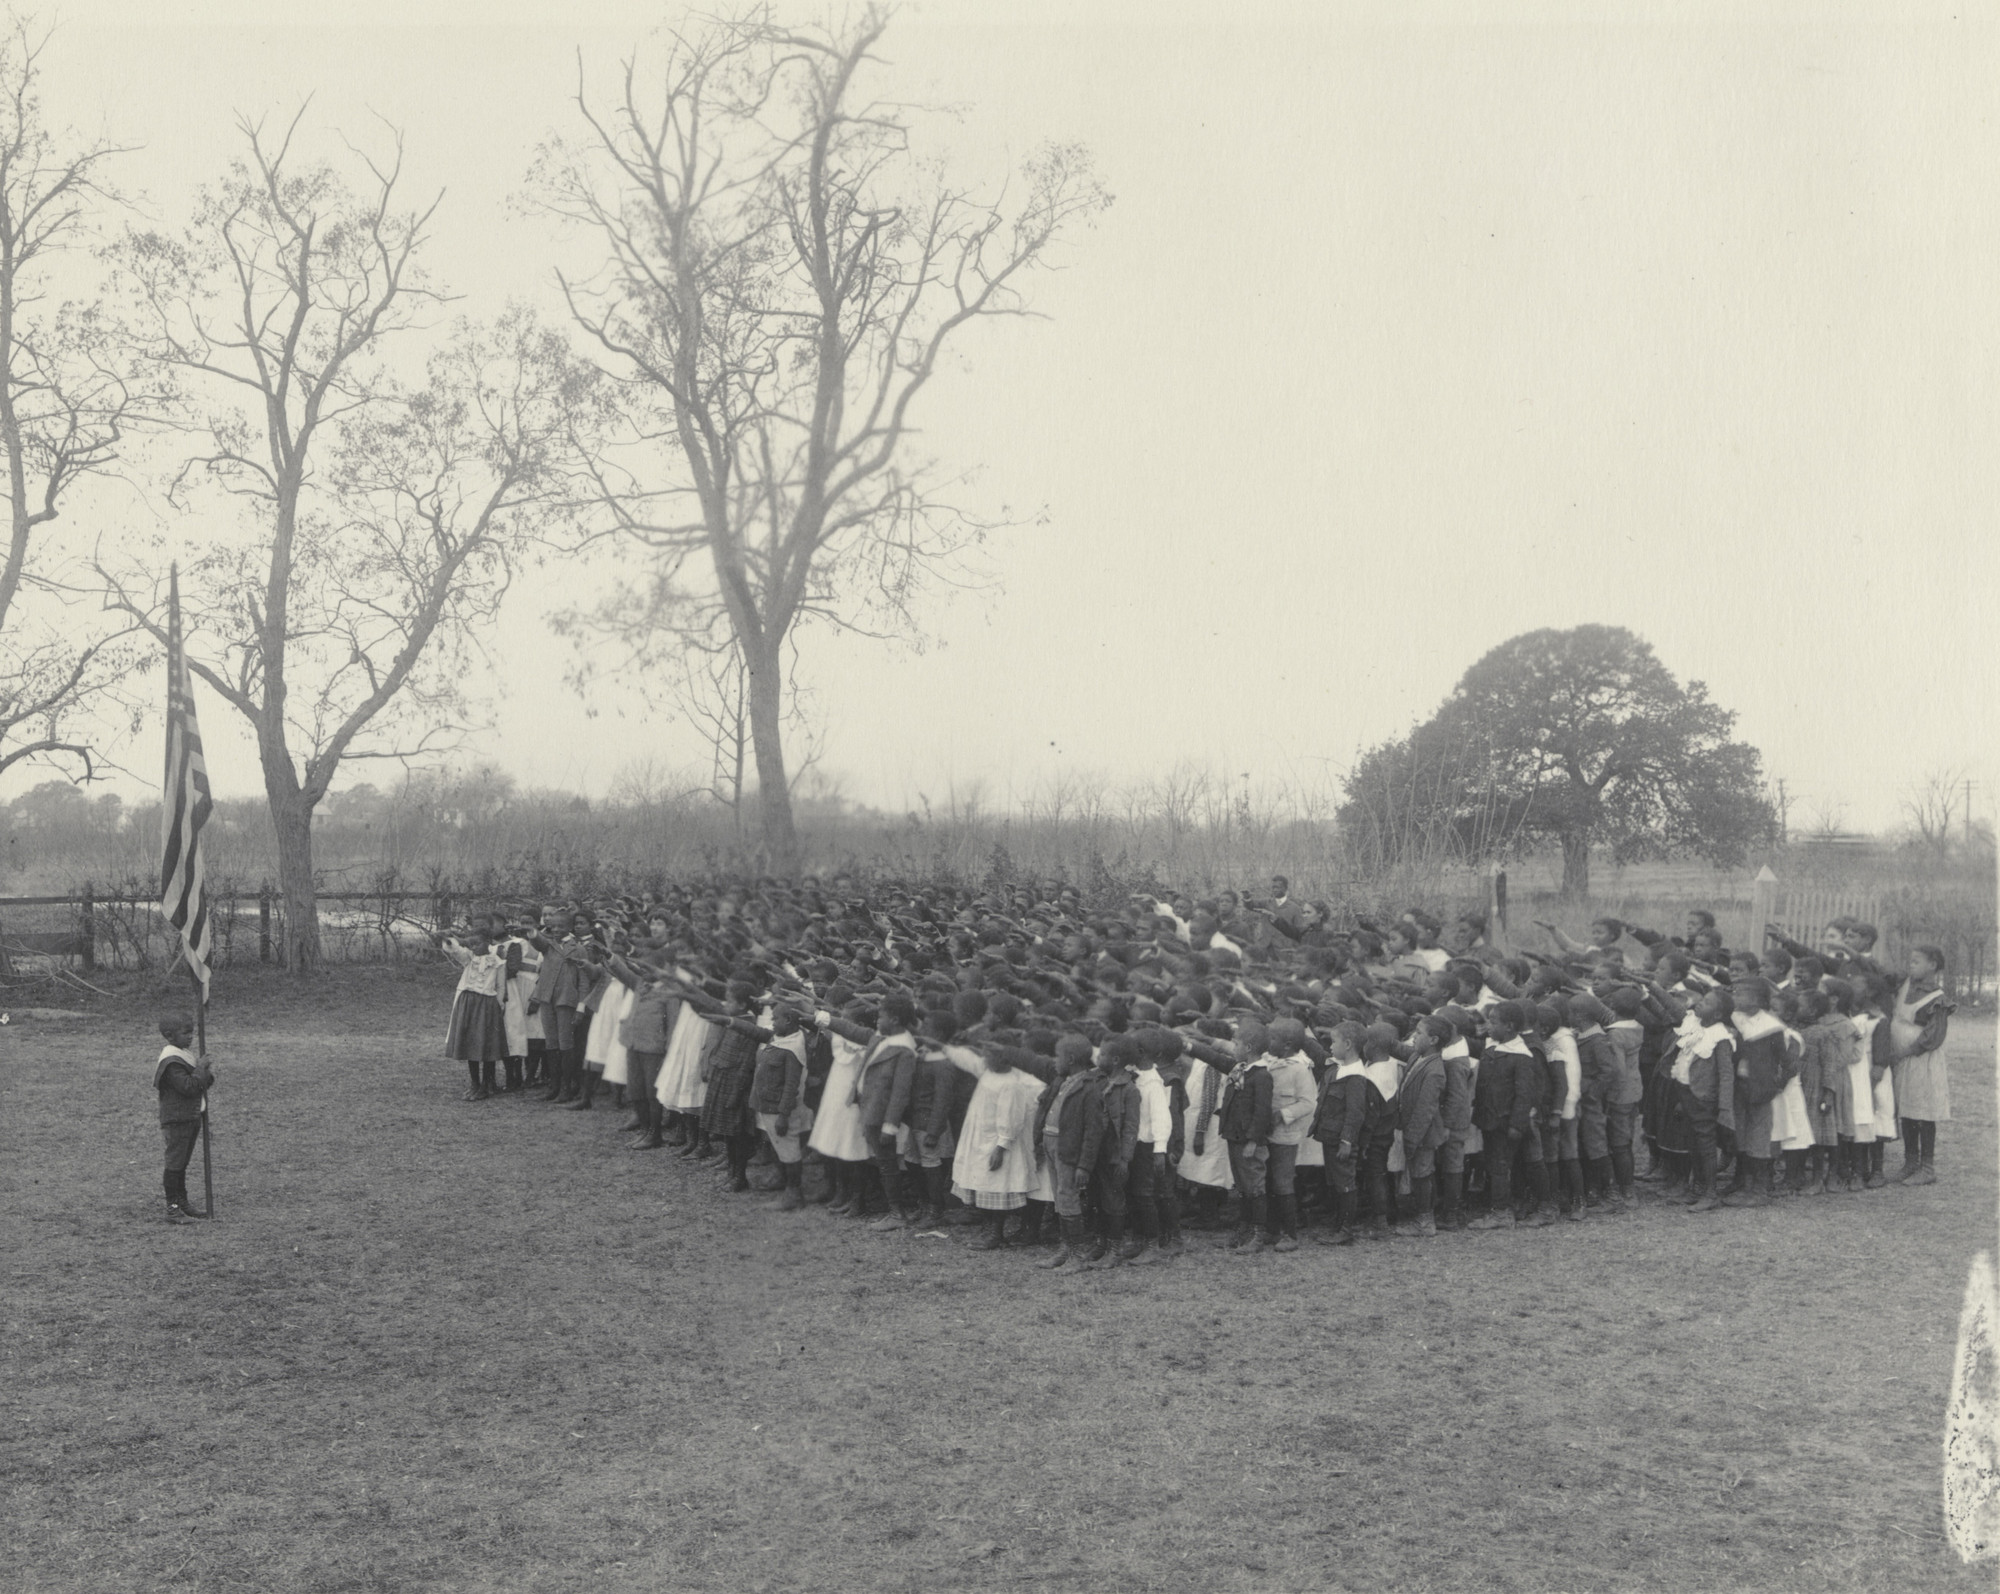 Frances Benjamin Johnston. Saluting the Flag at the Whittier Primary School. 1899-1900